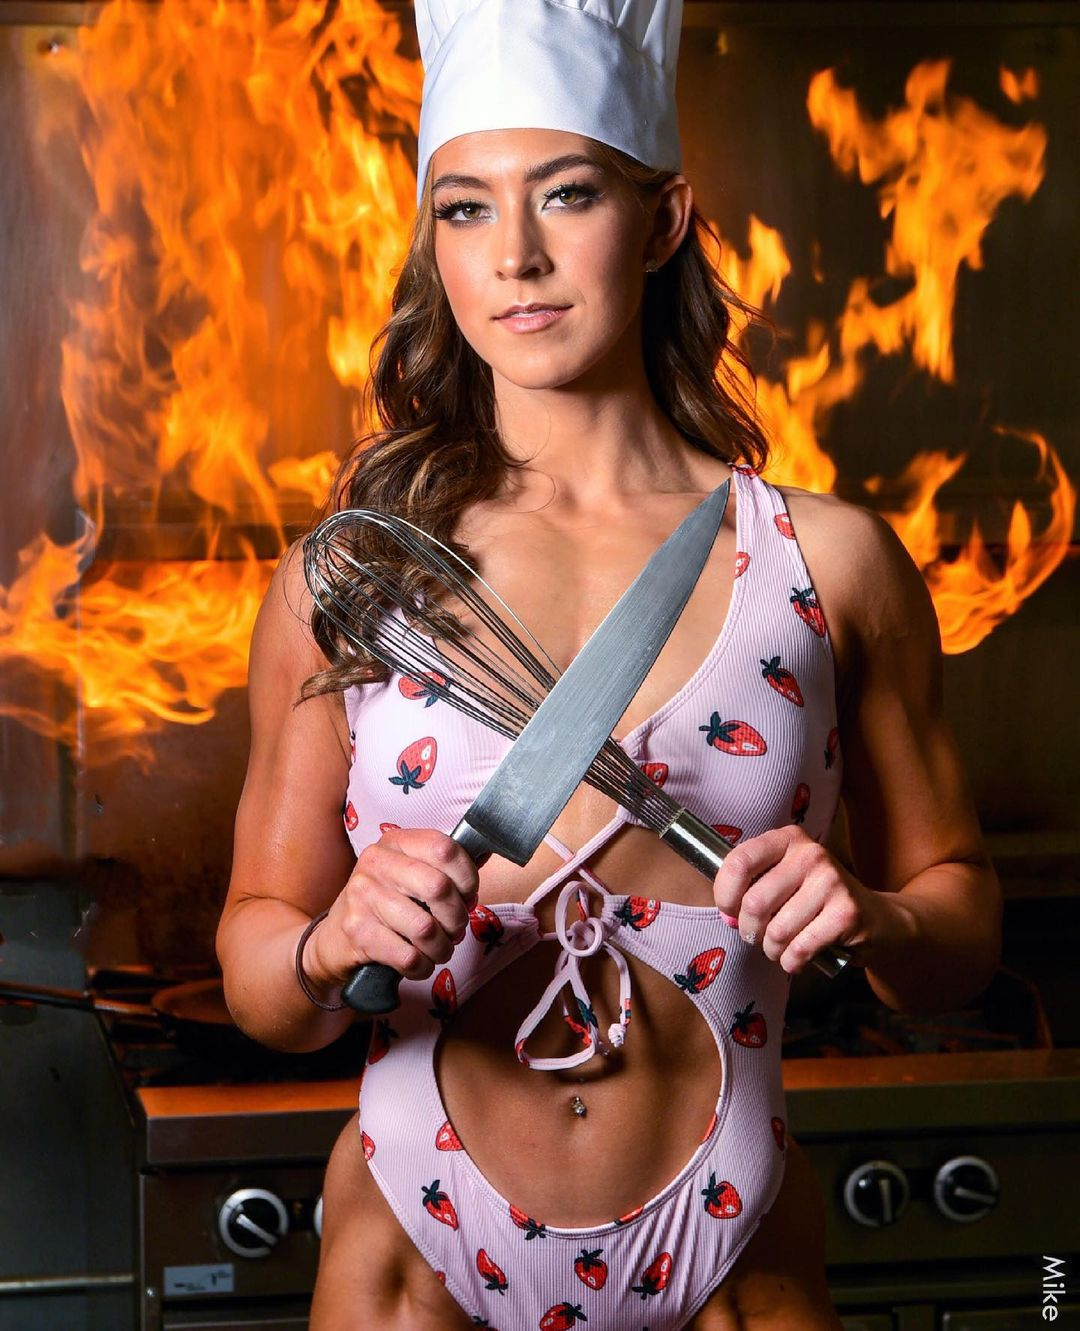 Photo of model Ava Harren in a bikini while cooking is worth seeing 3